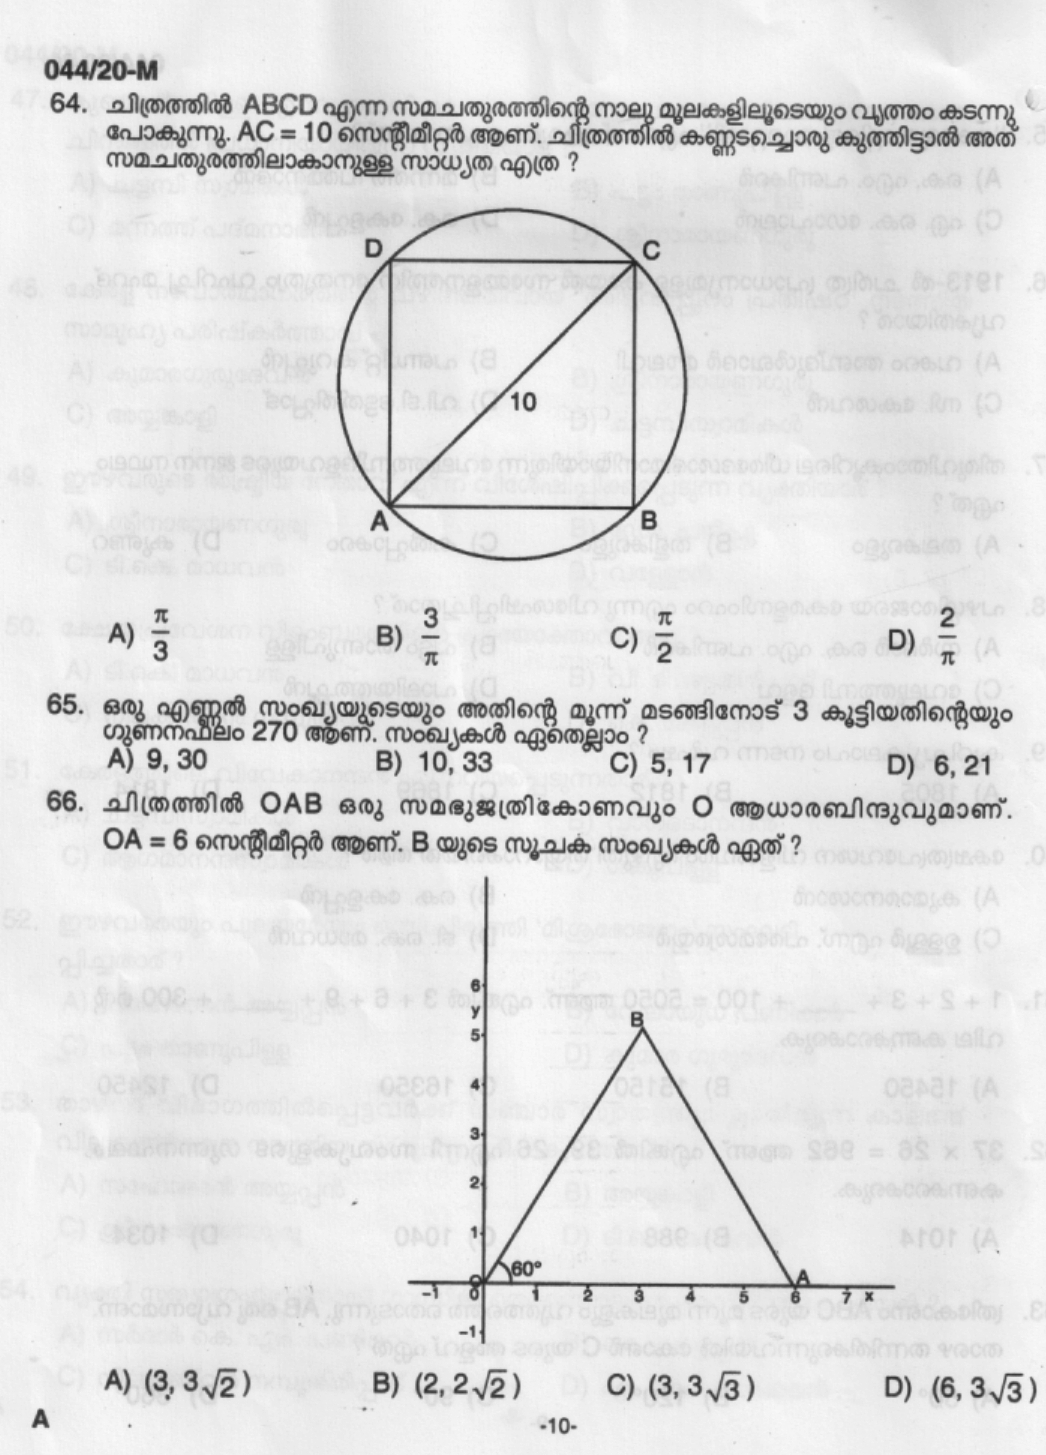 UP School Teacher Question paper with Answer Key 44/20